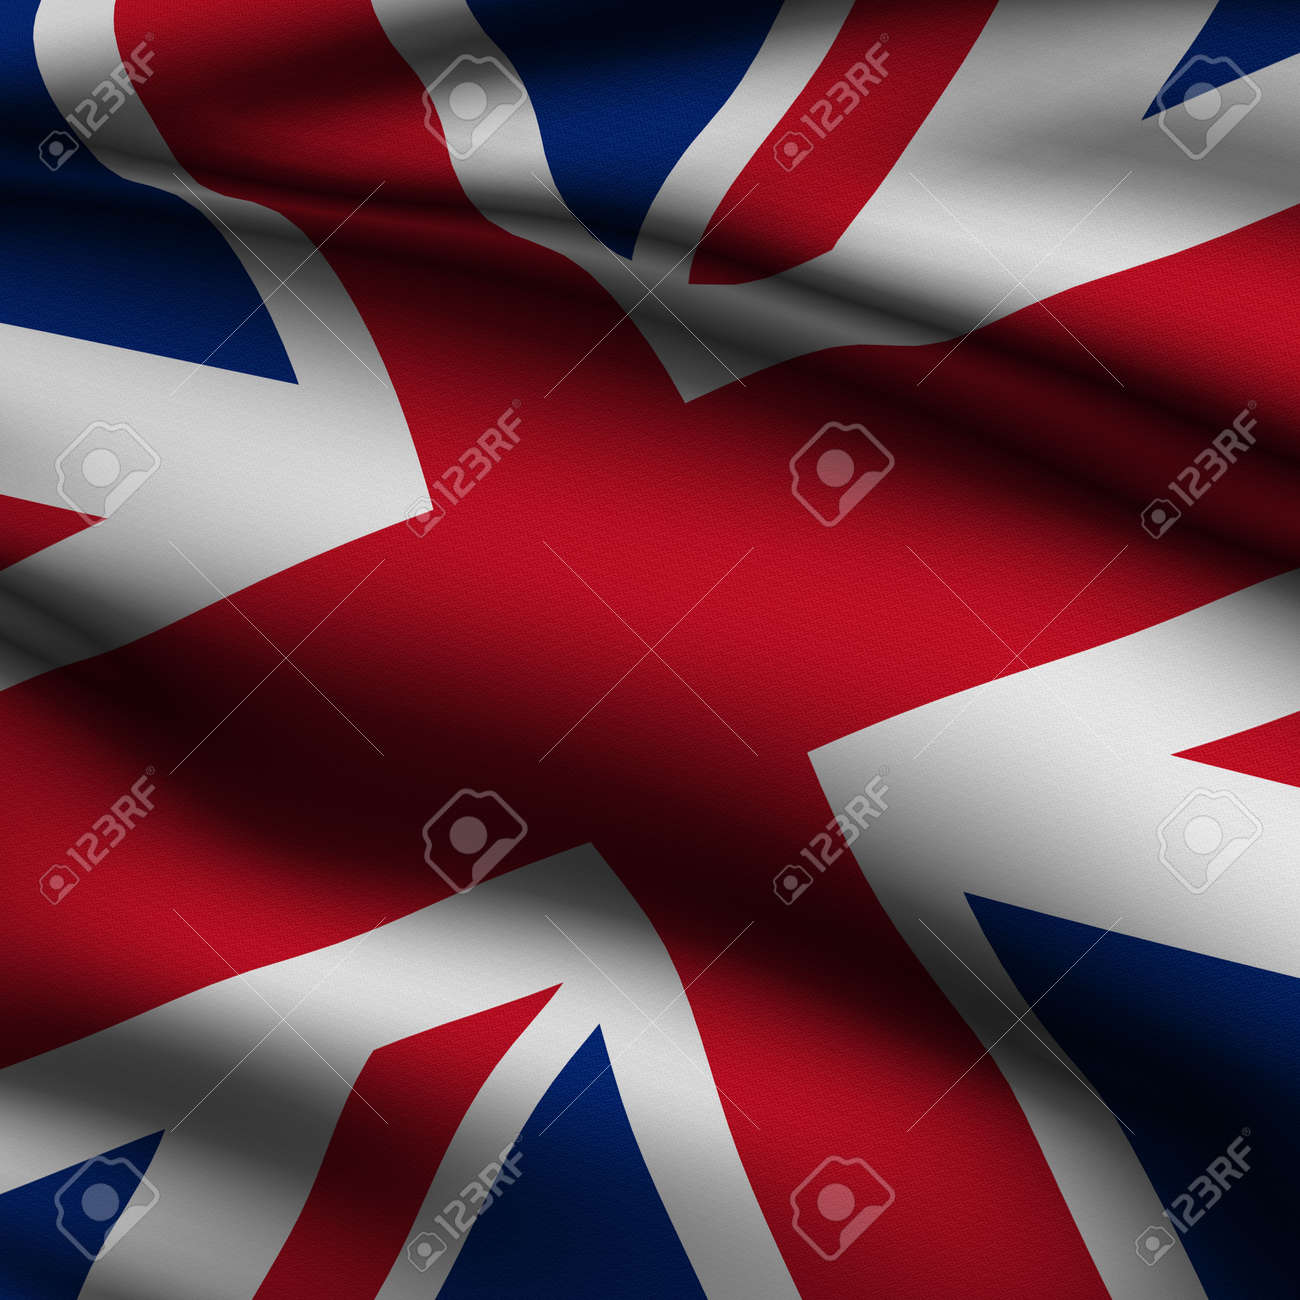 Rendering of a waving flag of the United Kingdom with accurate colors and design and a fabric texture in a square format Stock Photo - 3660822